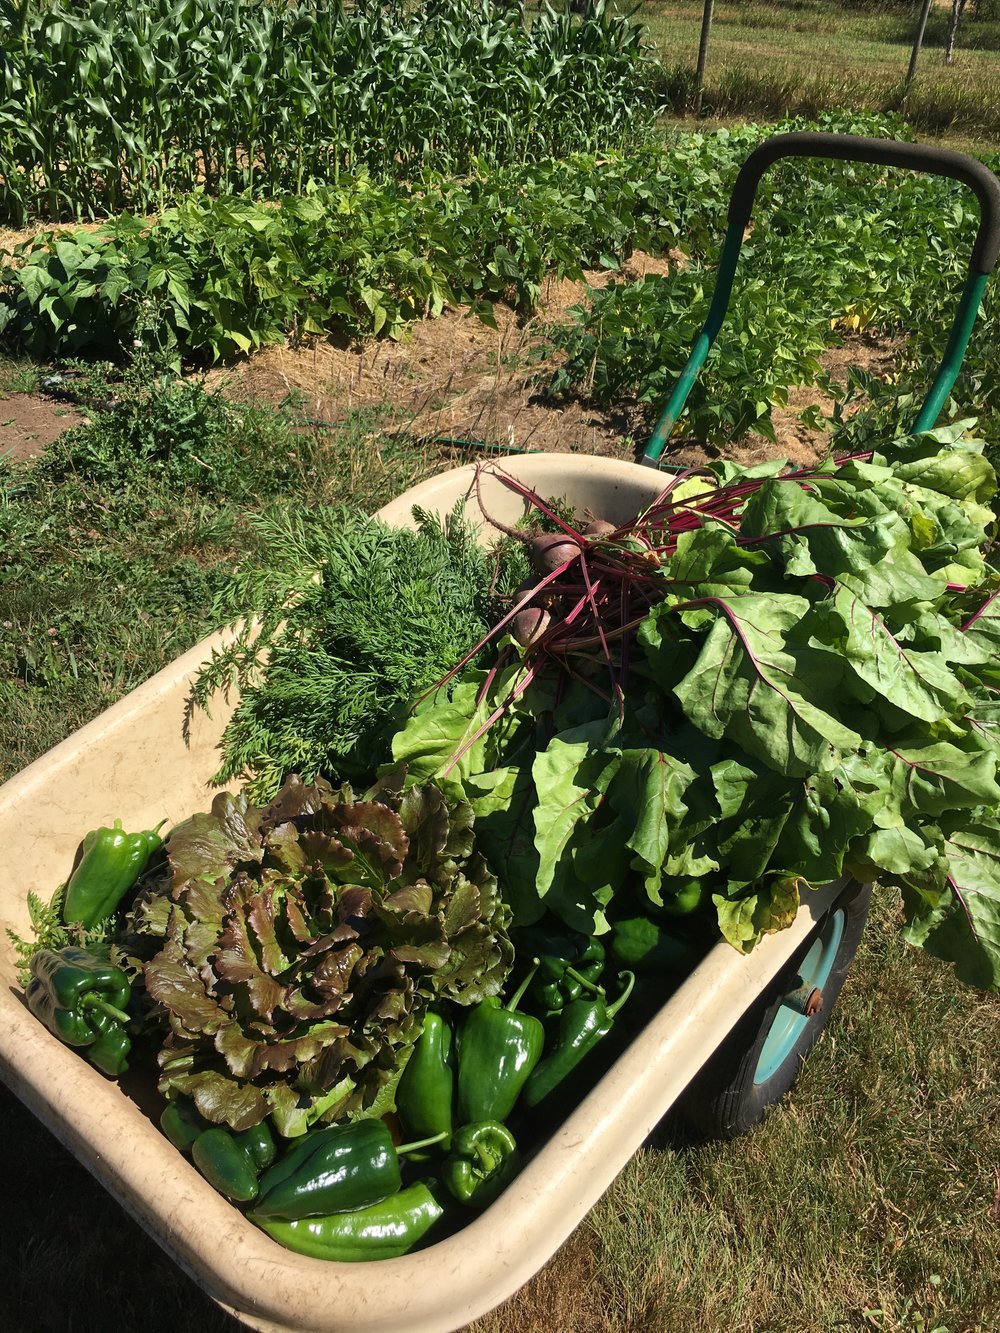 Lettuces, peppers, beets in cart.jpg